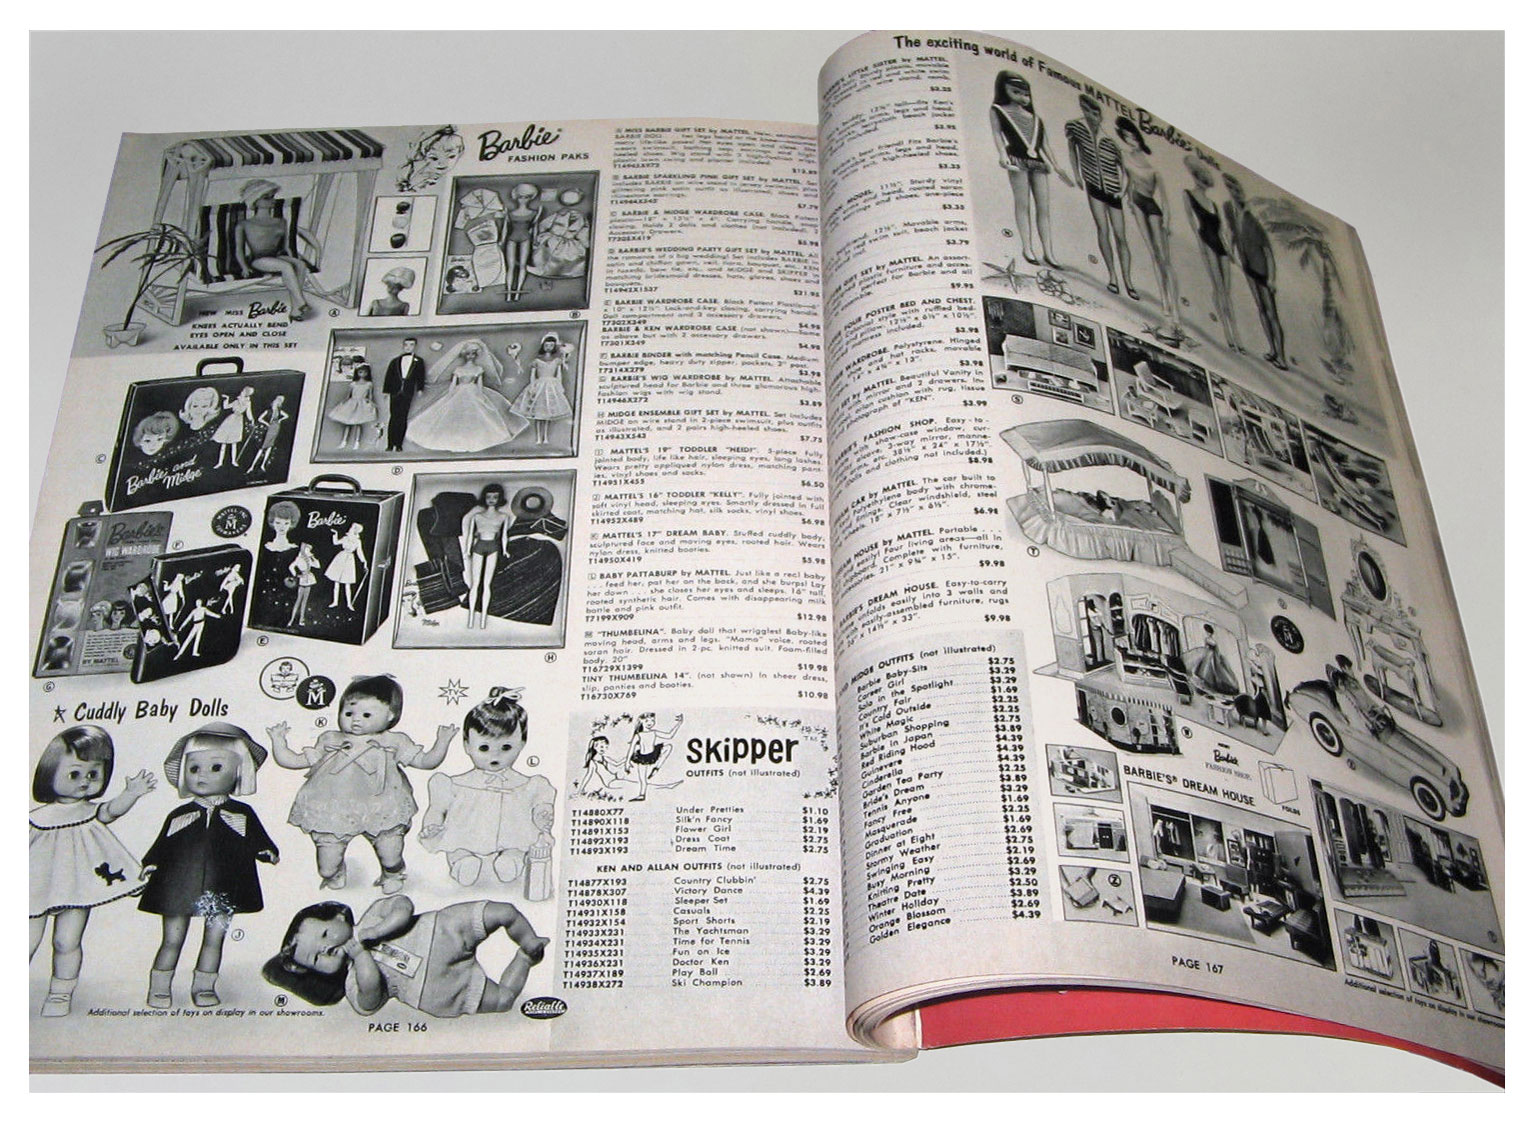 From 1964-65 Canadian Consumers Distributing Co. Ltd. Wholesale Guide